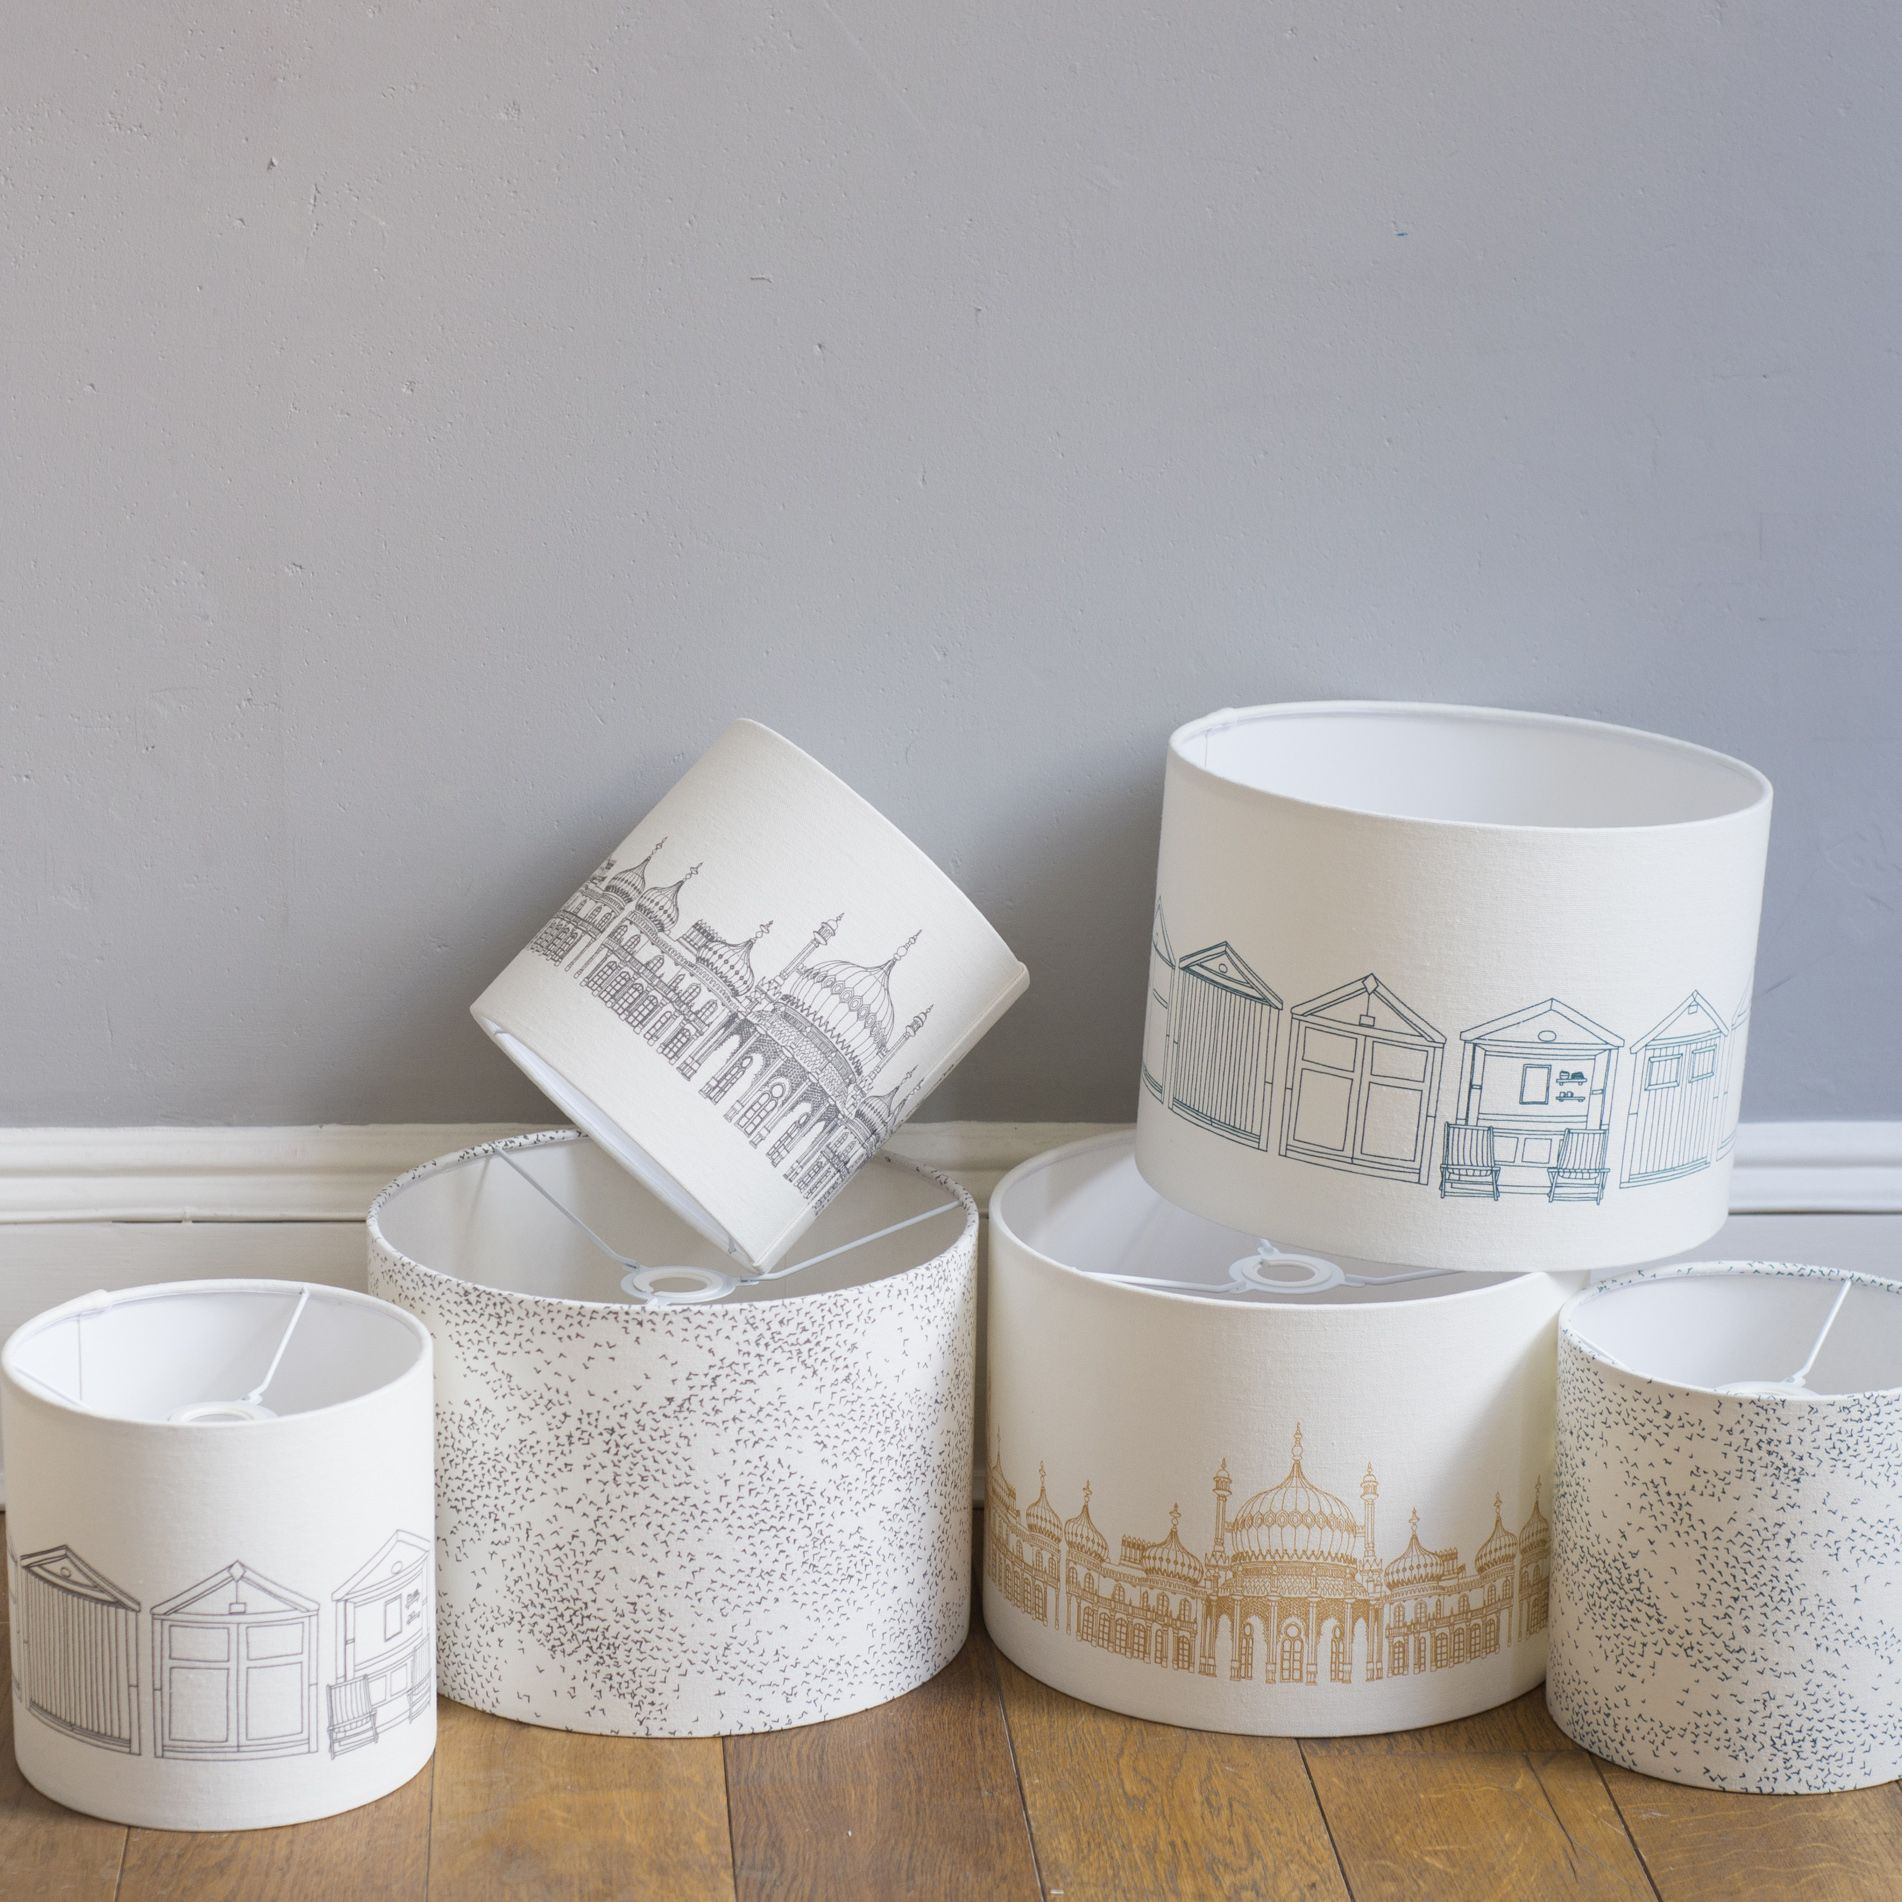 Brighton Lampshades  Photography by Holly Booth